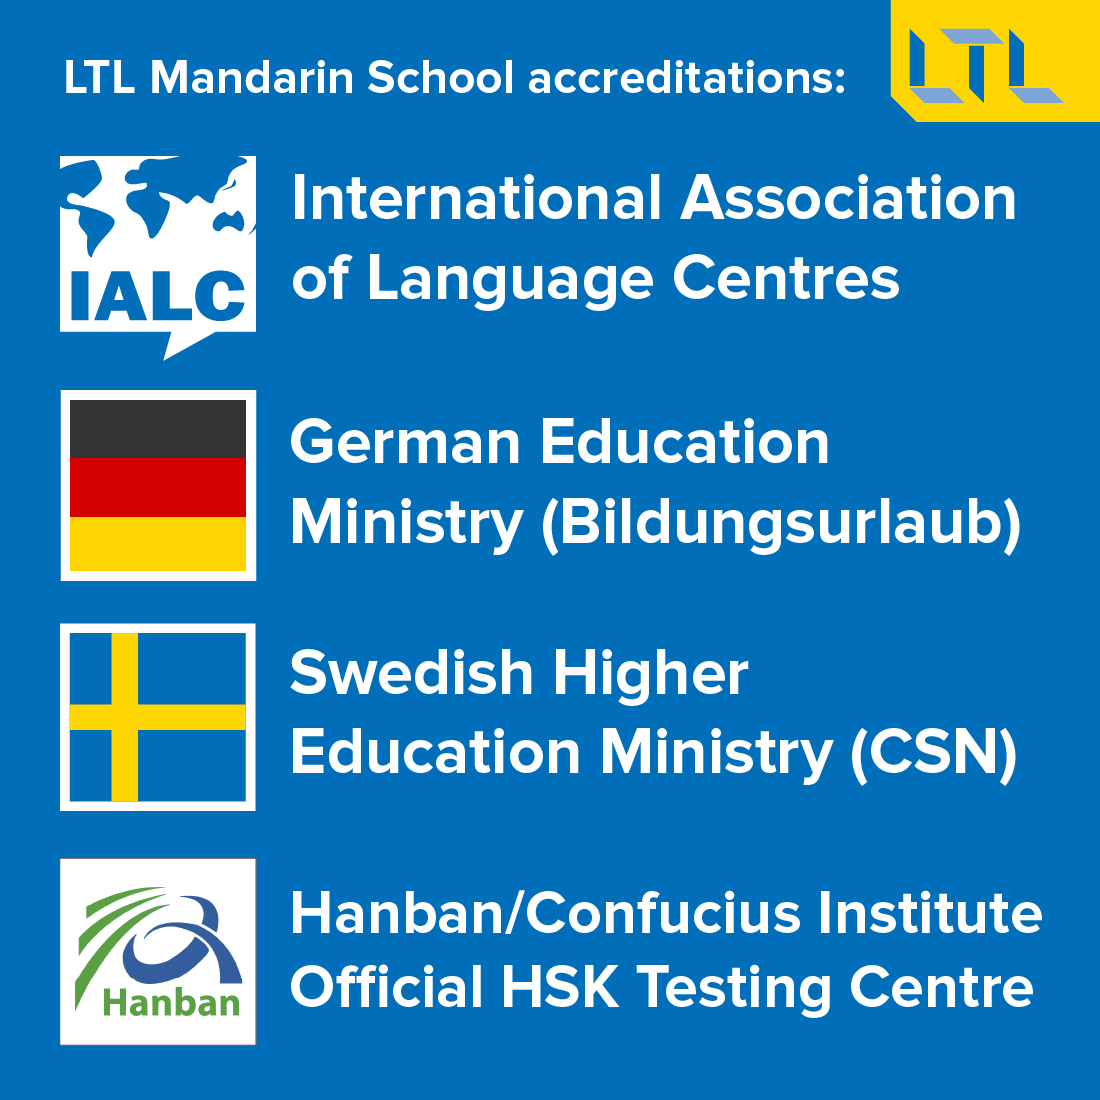 Quick Facts about LTL Mandarin School - Accreditations